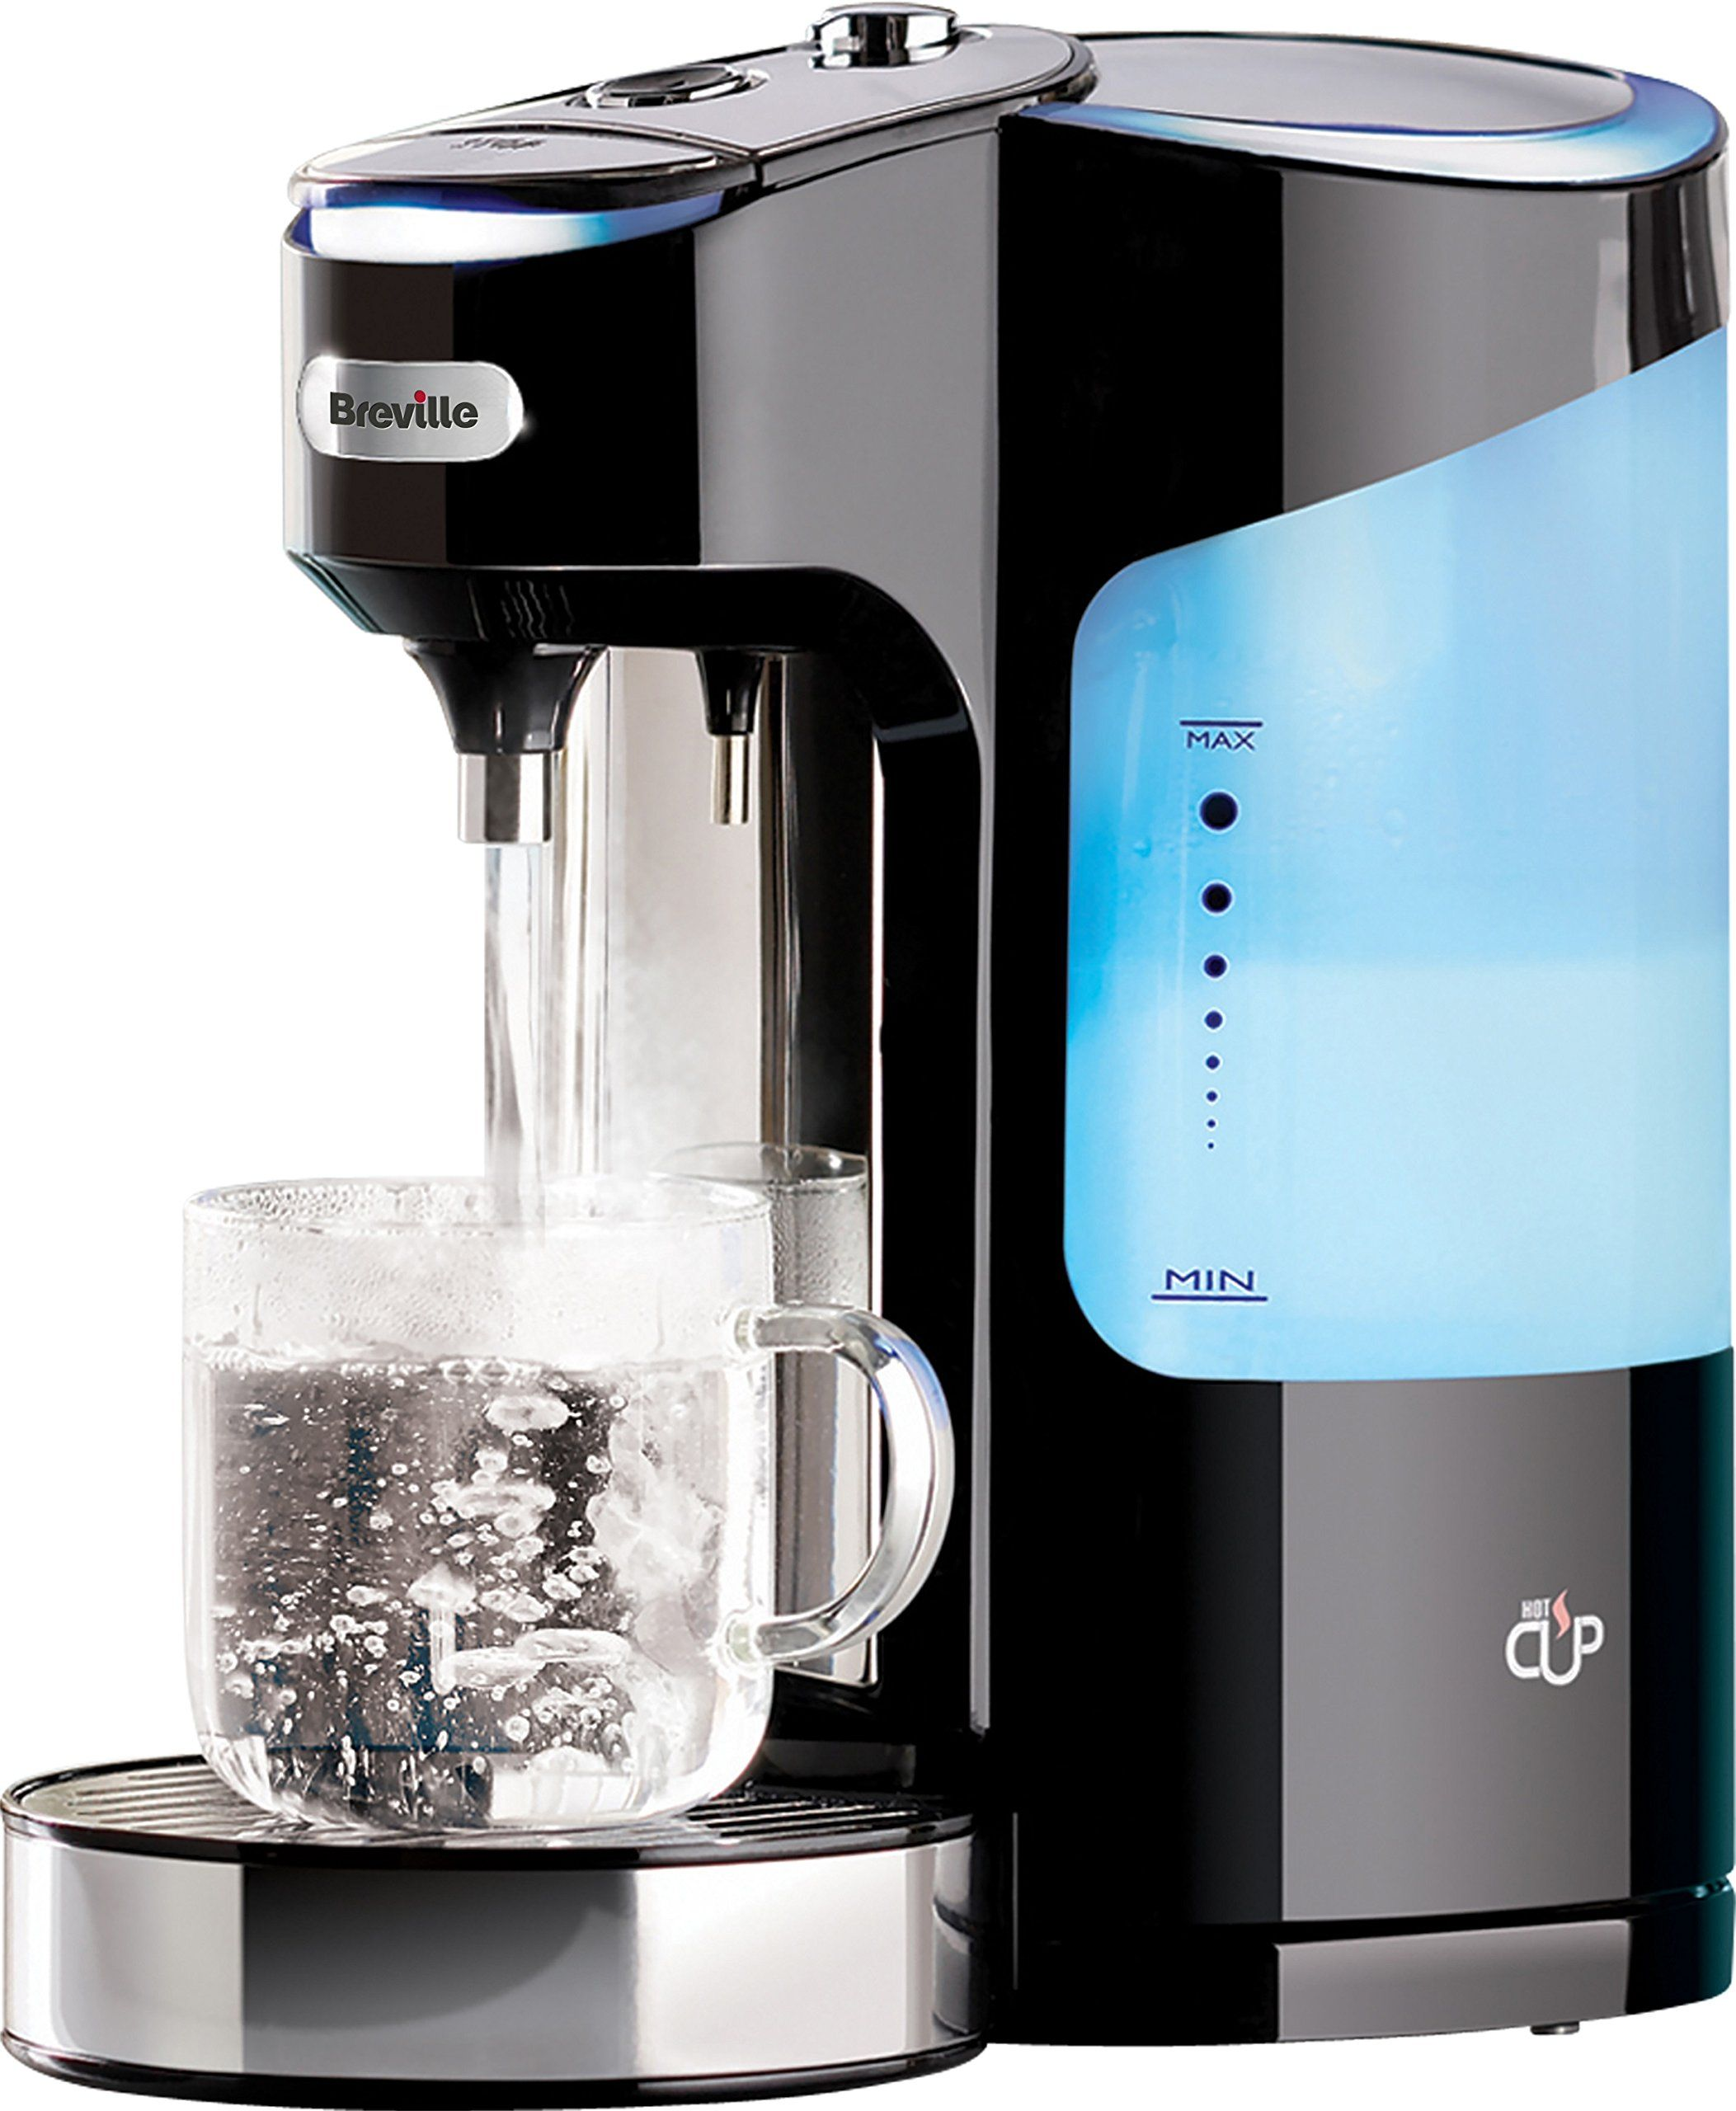 Breville Vkj318 Hot Cup Quick Boil With Variable Dispenser Black Water Dispenser Hot Water Dispensers Electric Jug